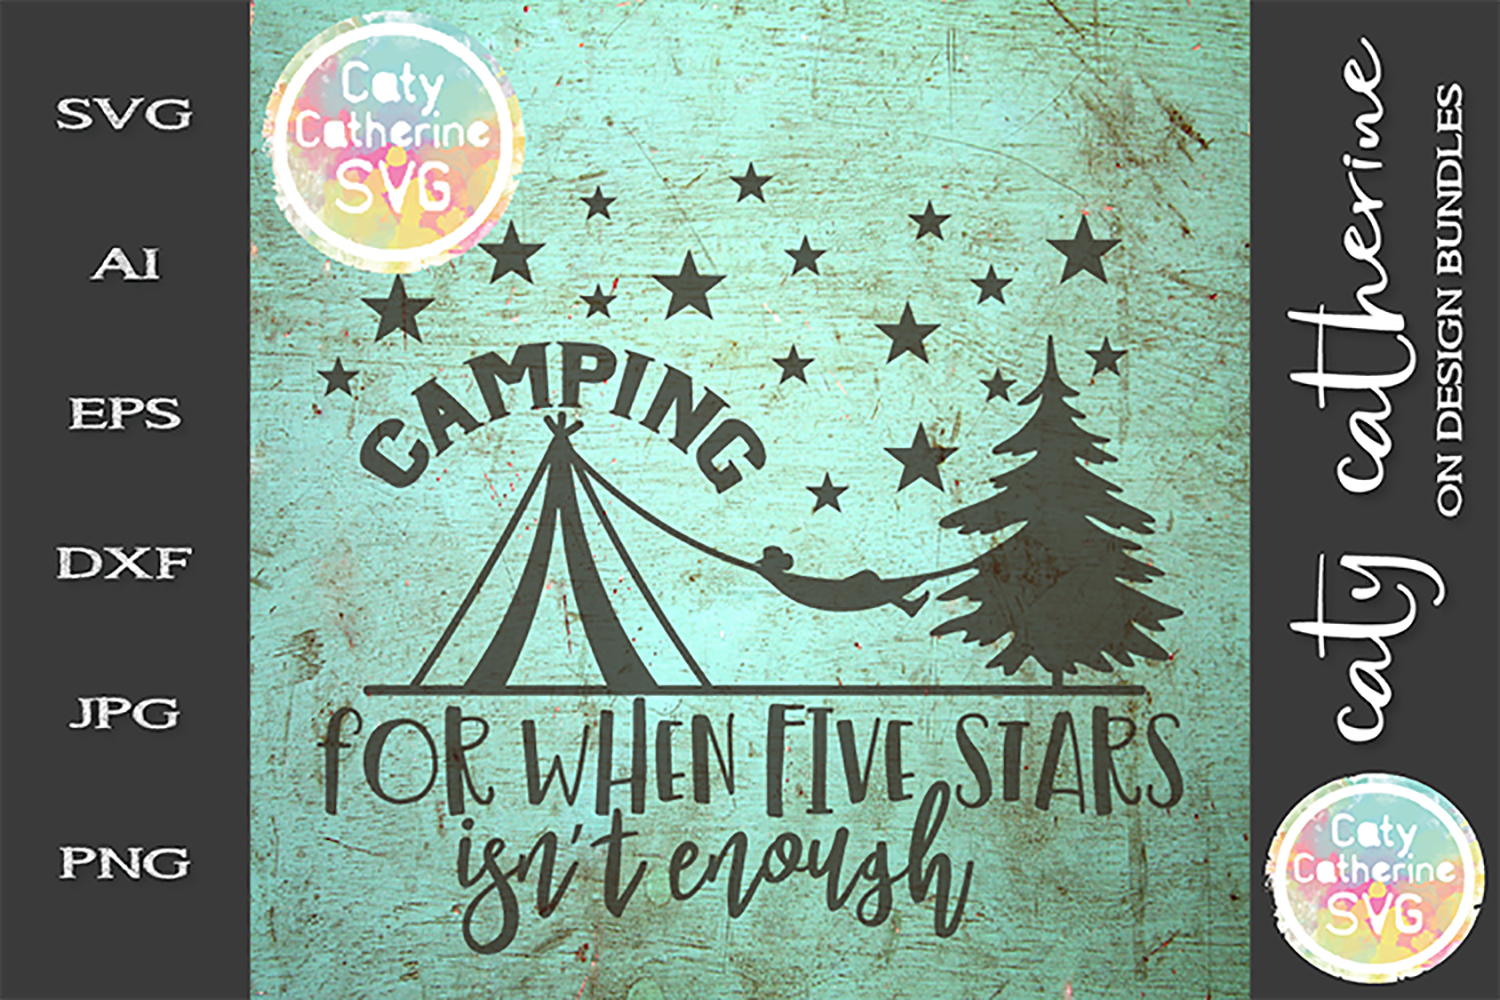 Tent Camping For When Five Stars Isn't Enough SVG Cut File example image 1